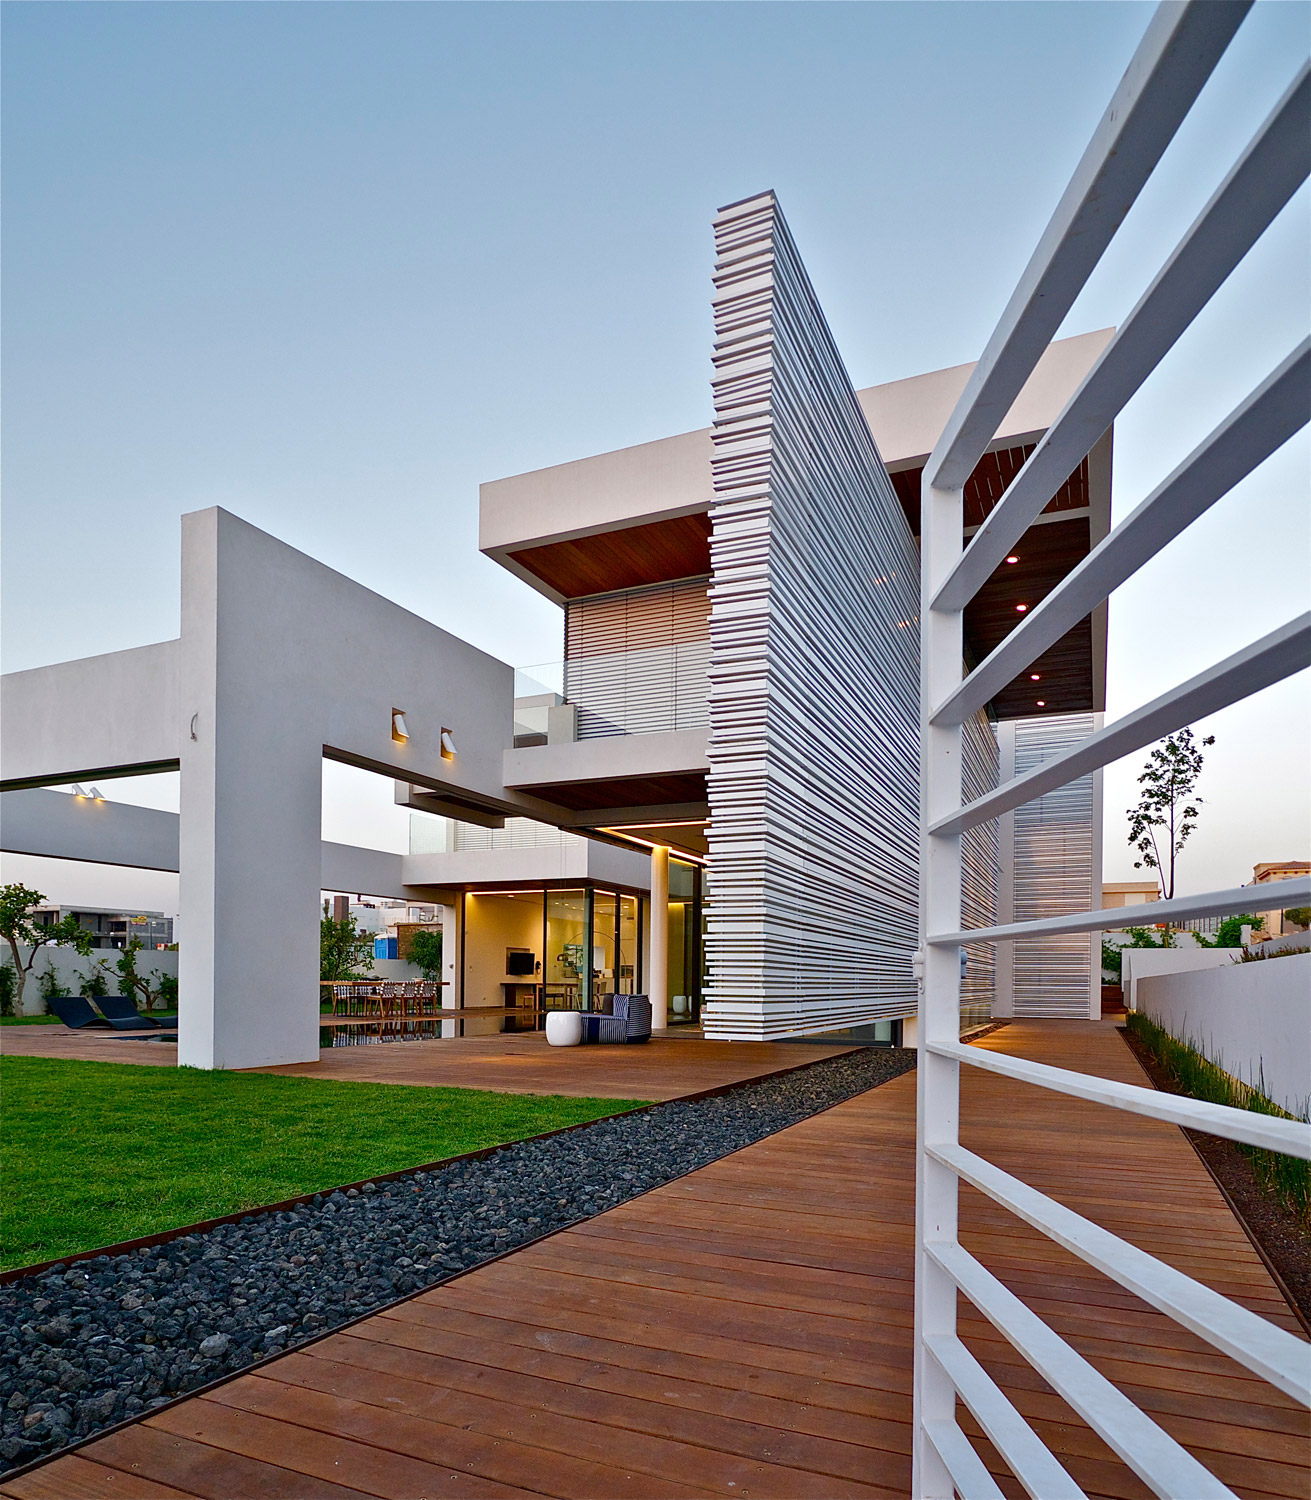 Modern luxury villas designed by gal marom architects for Luxury home architects